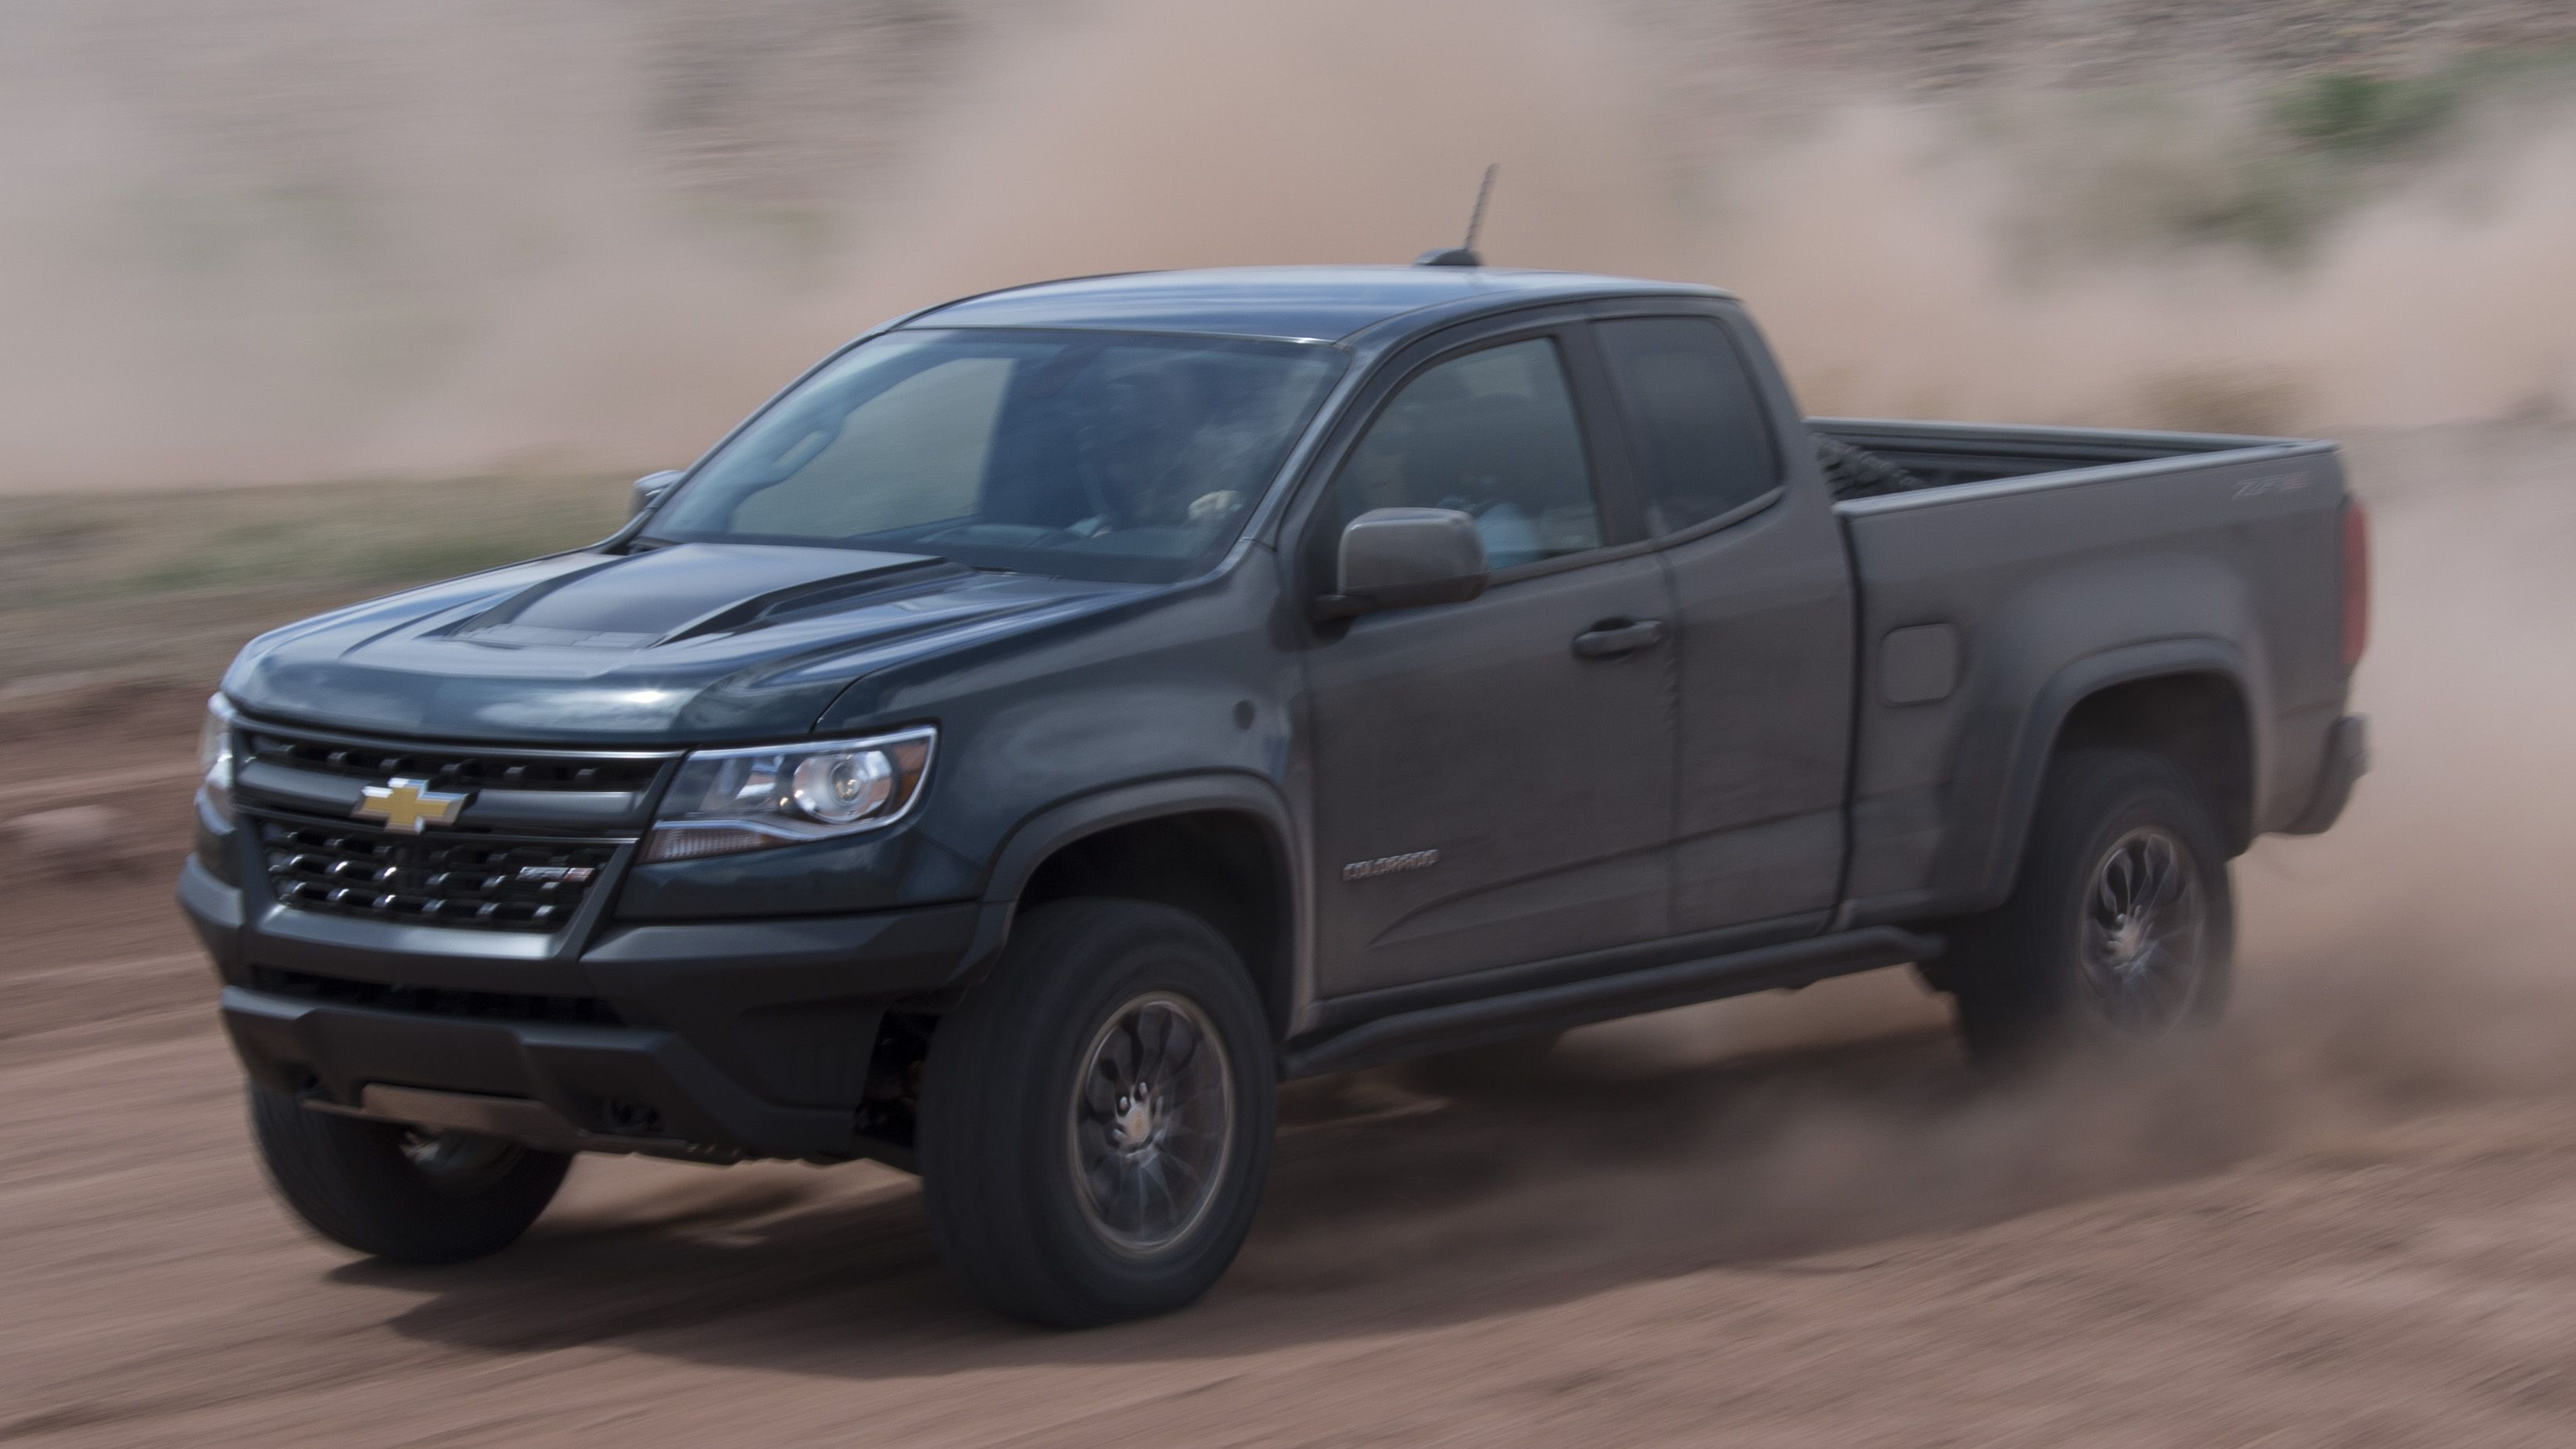 What do you want to know about the 2017 chevy colorado zr2